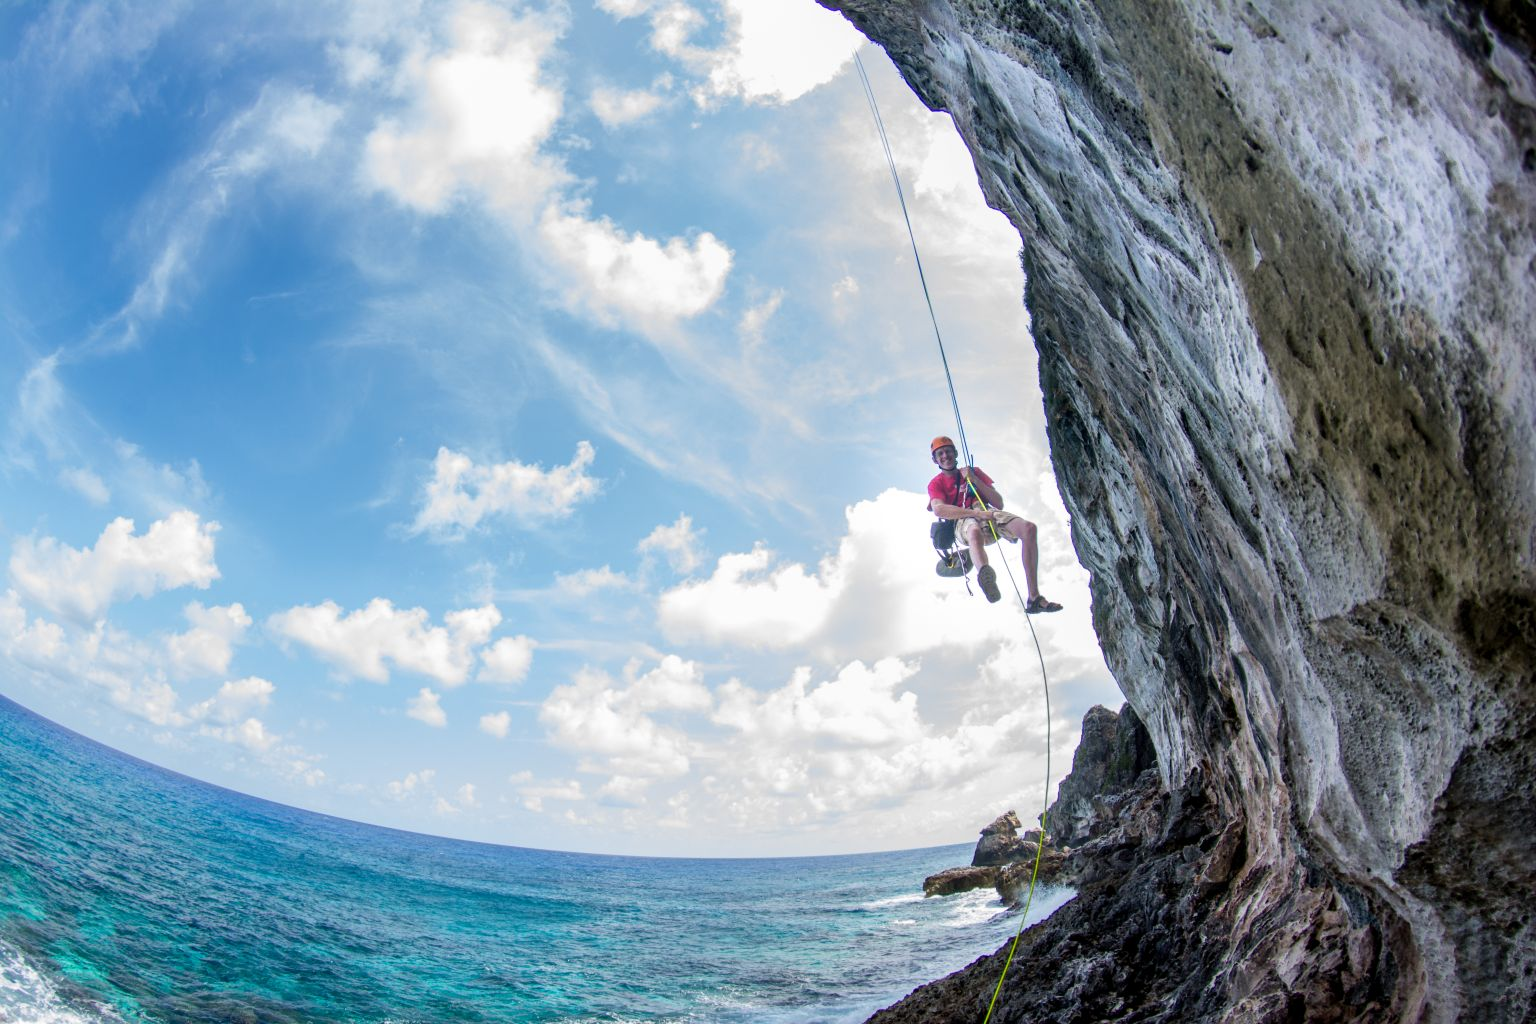 Climbing Cayman Brac - Open climb - Bluff Rappel Photot by Jim